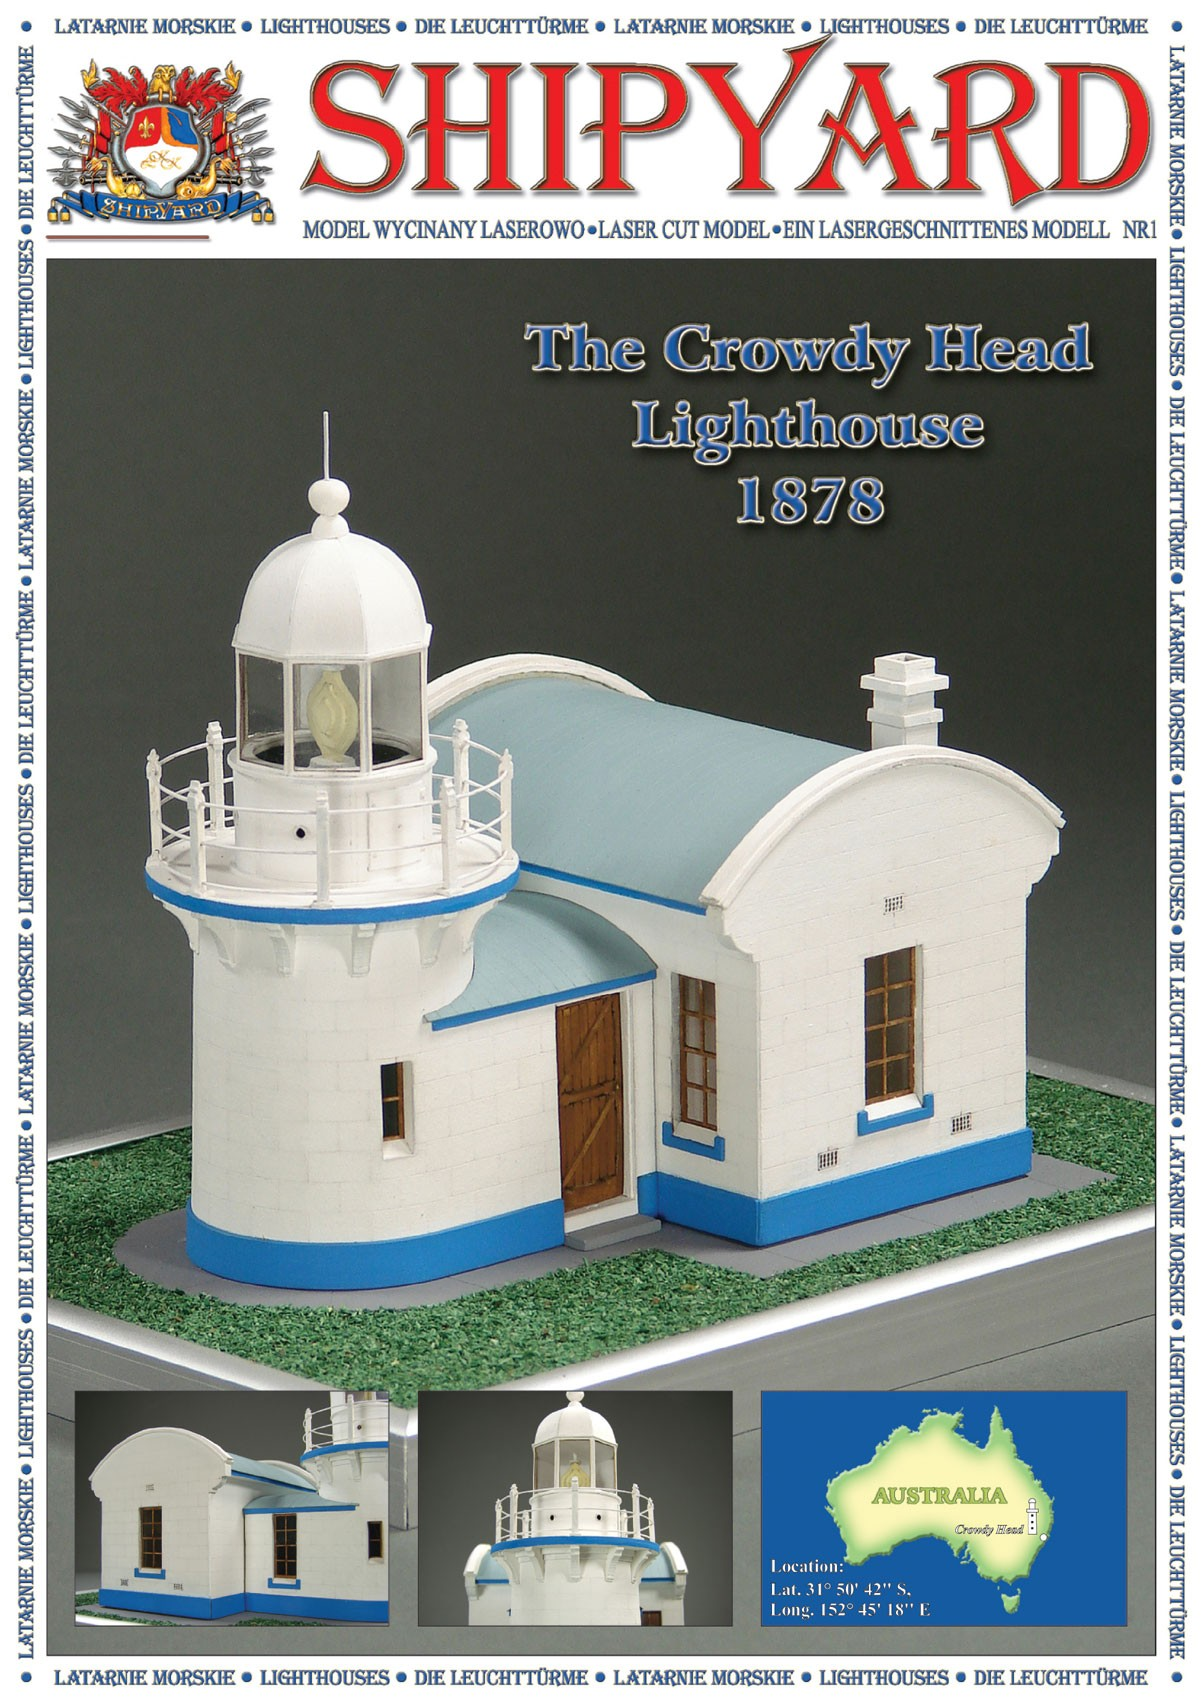 Paper Crowdy Head Lighthouse, 1878 (1:87 (HO), Shipyard)